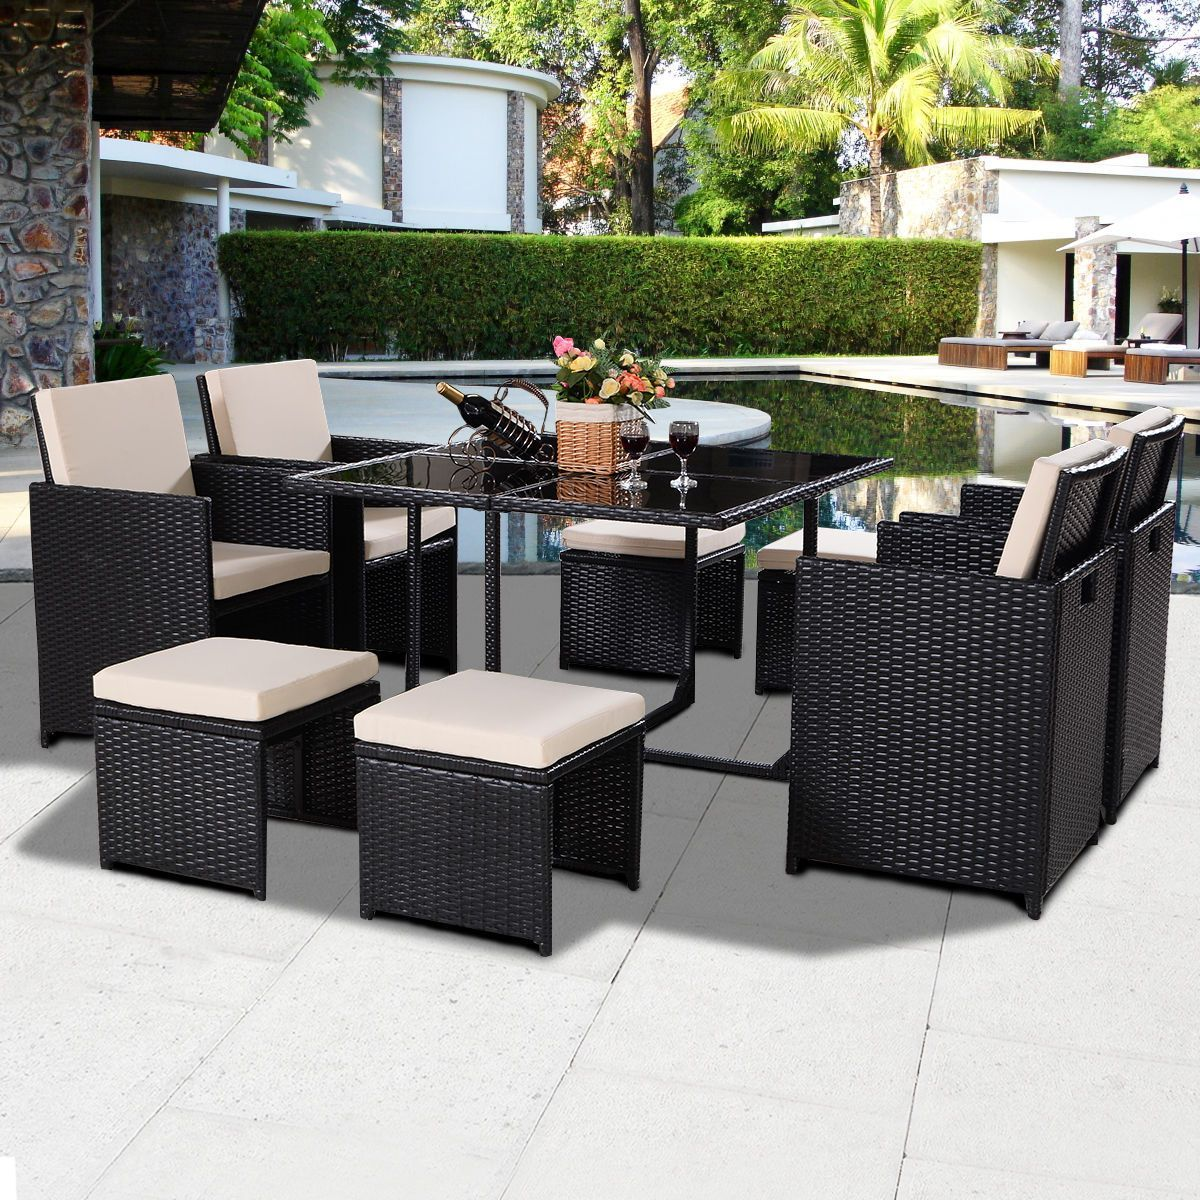 Large 9 Pcs Black Patio Garden Rattan Wicker Sofa Set Modern Outdoor Furniture Set C Wicker Patio Chairs Wicker Patio Furniture Sets Wicker Patio Furniture Set